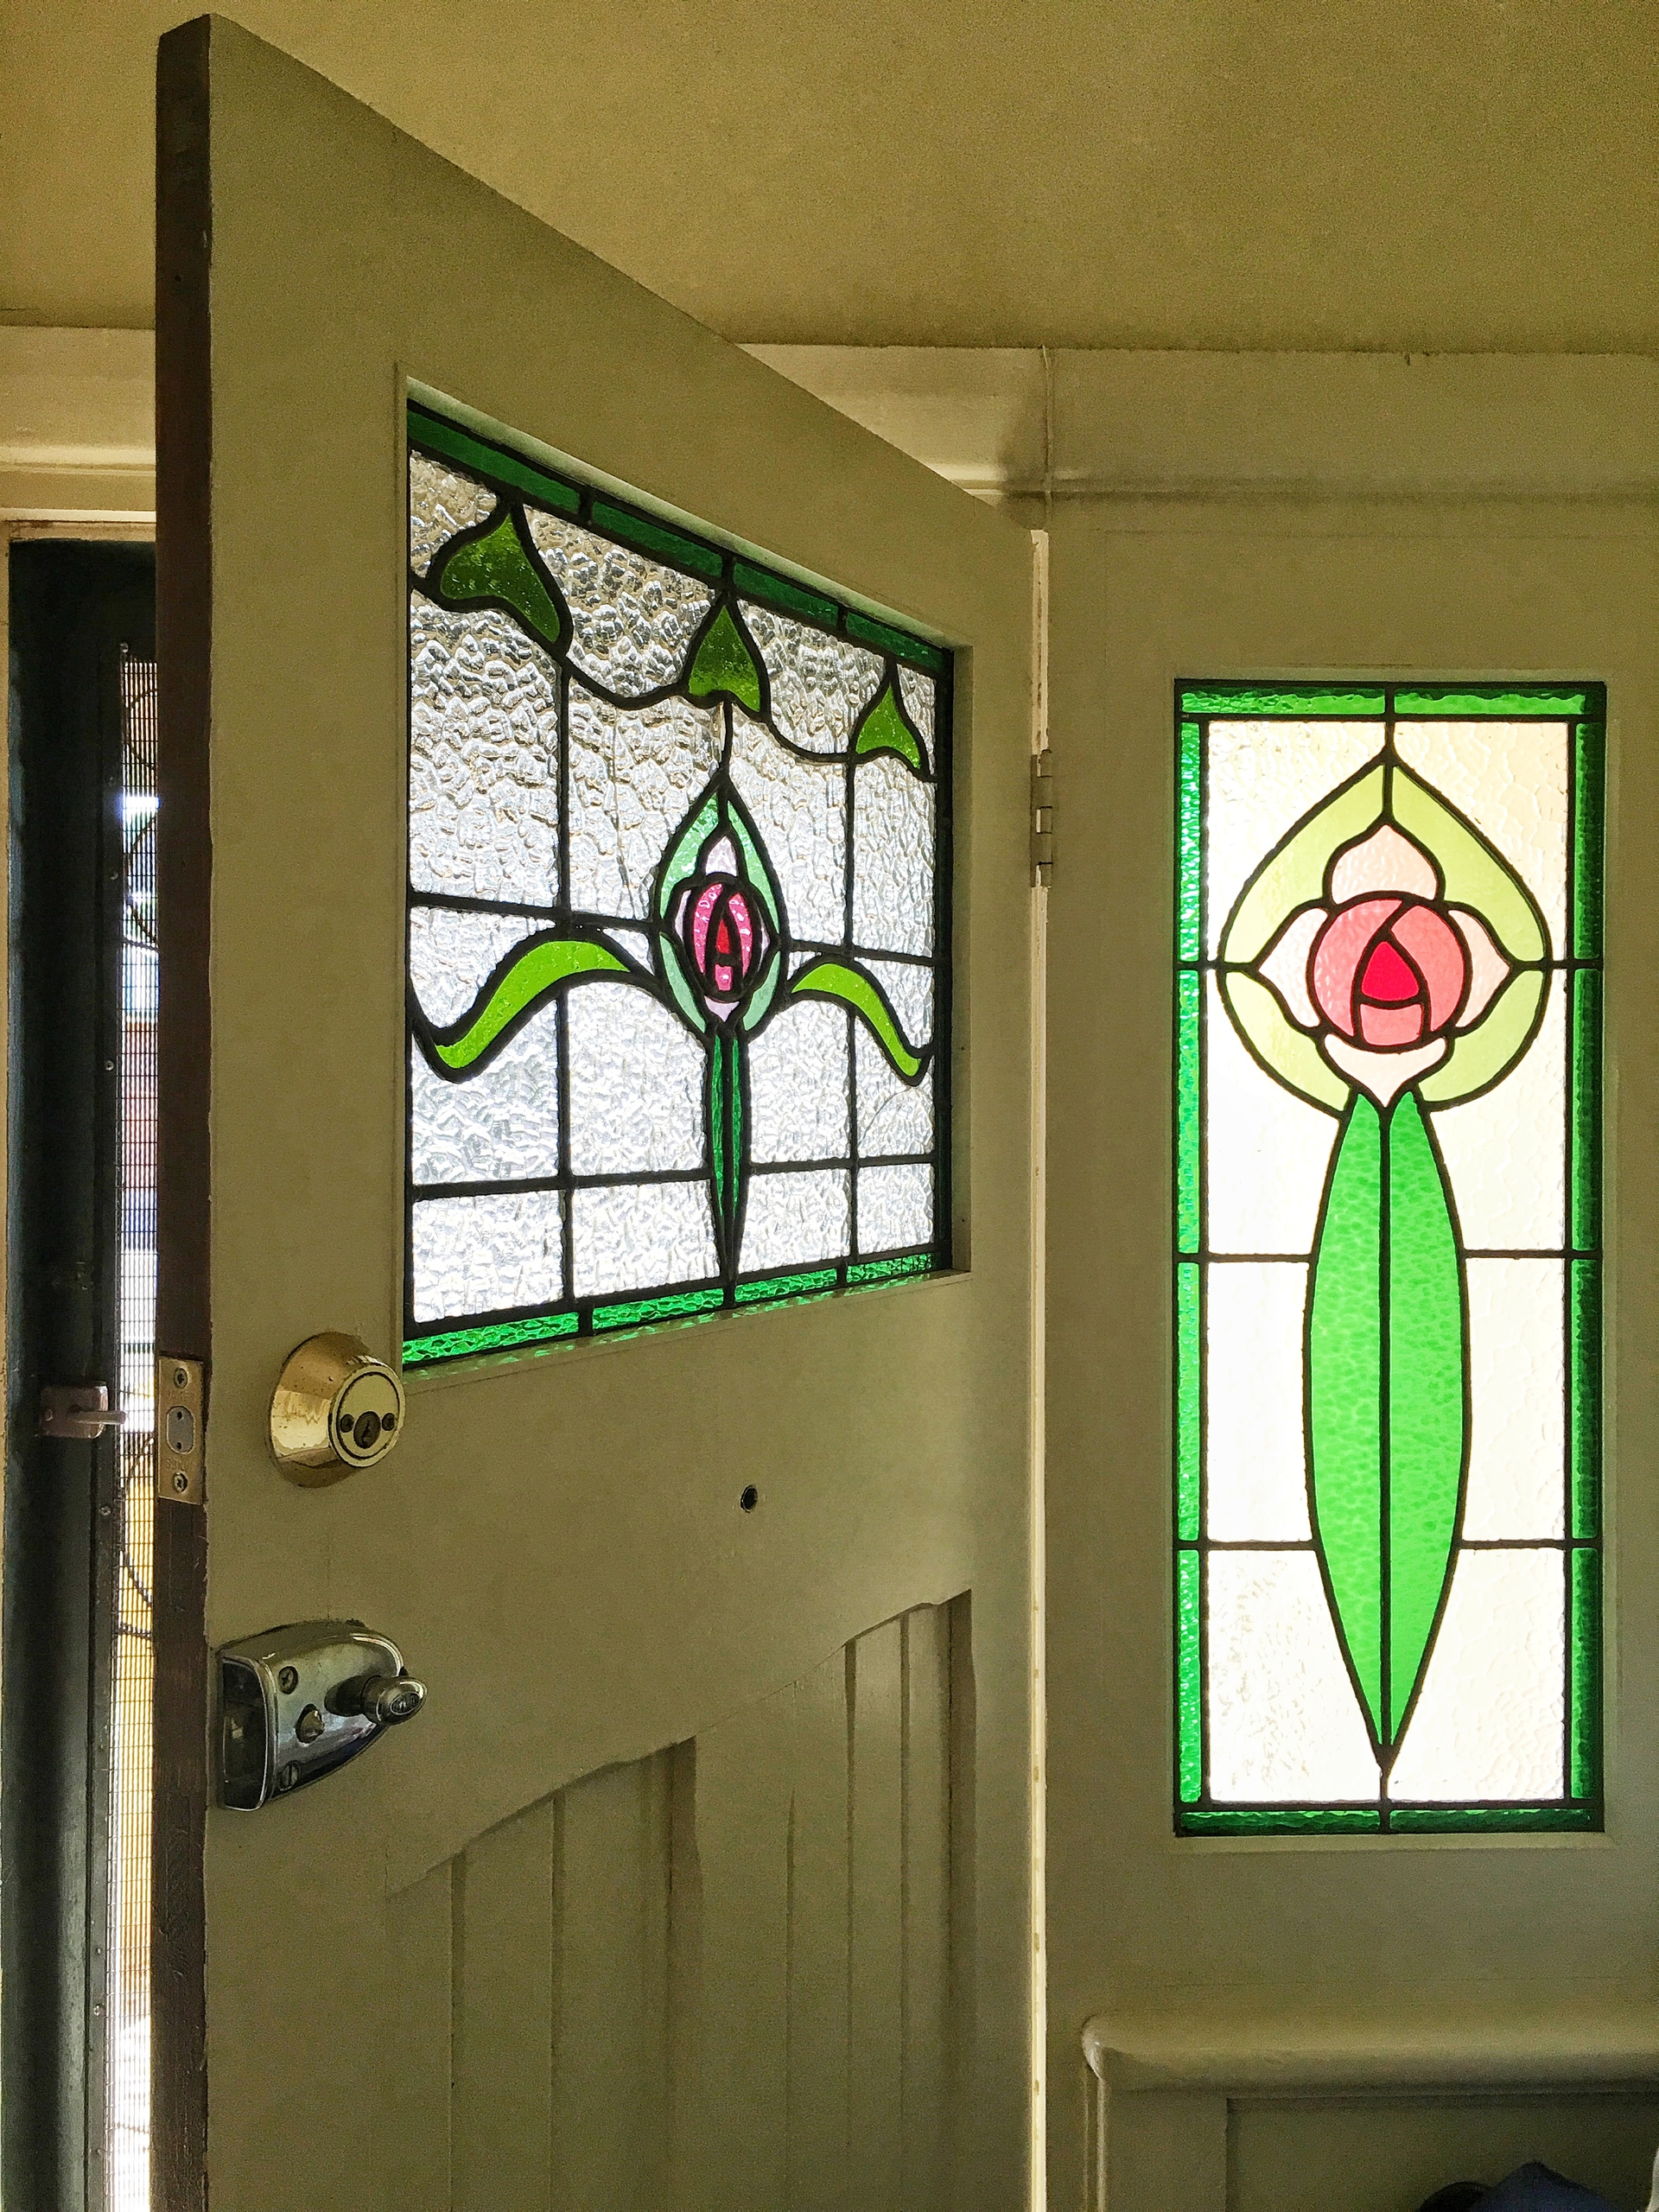 1920s stained glass front entry door and window Australia & Foap.com: 1920s stained glass front entry door and window ... Pezcame.Com